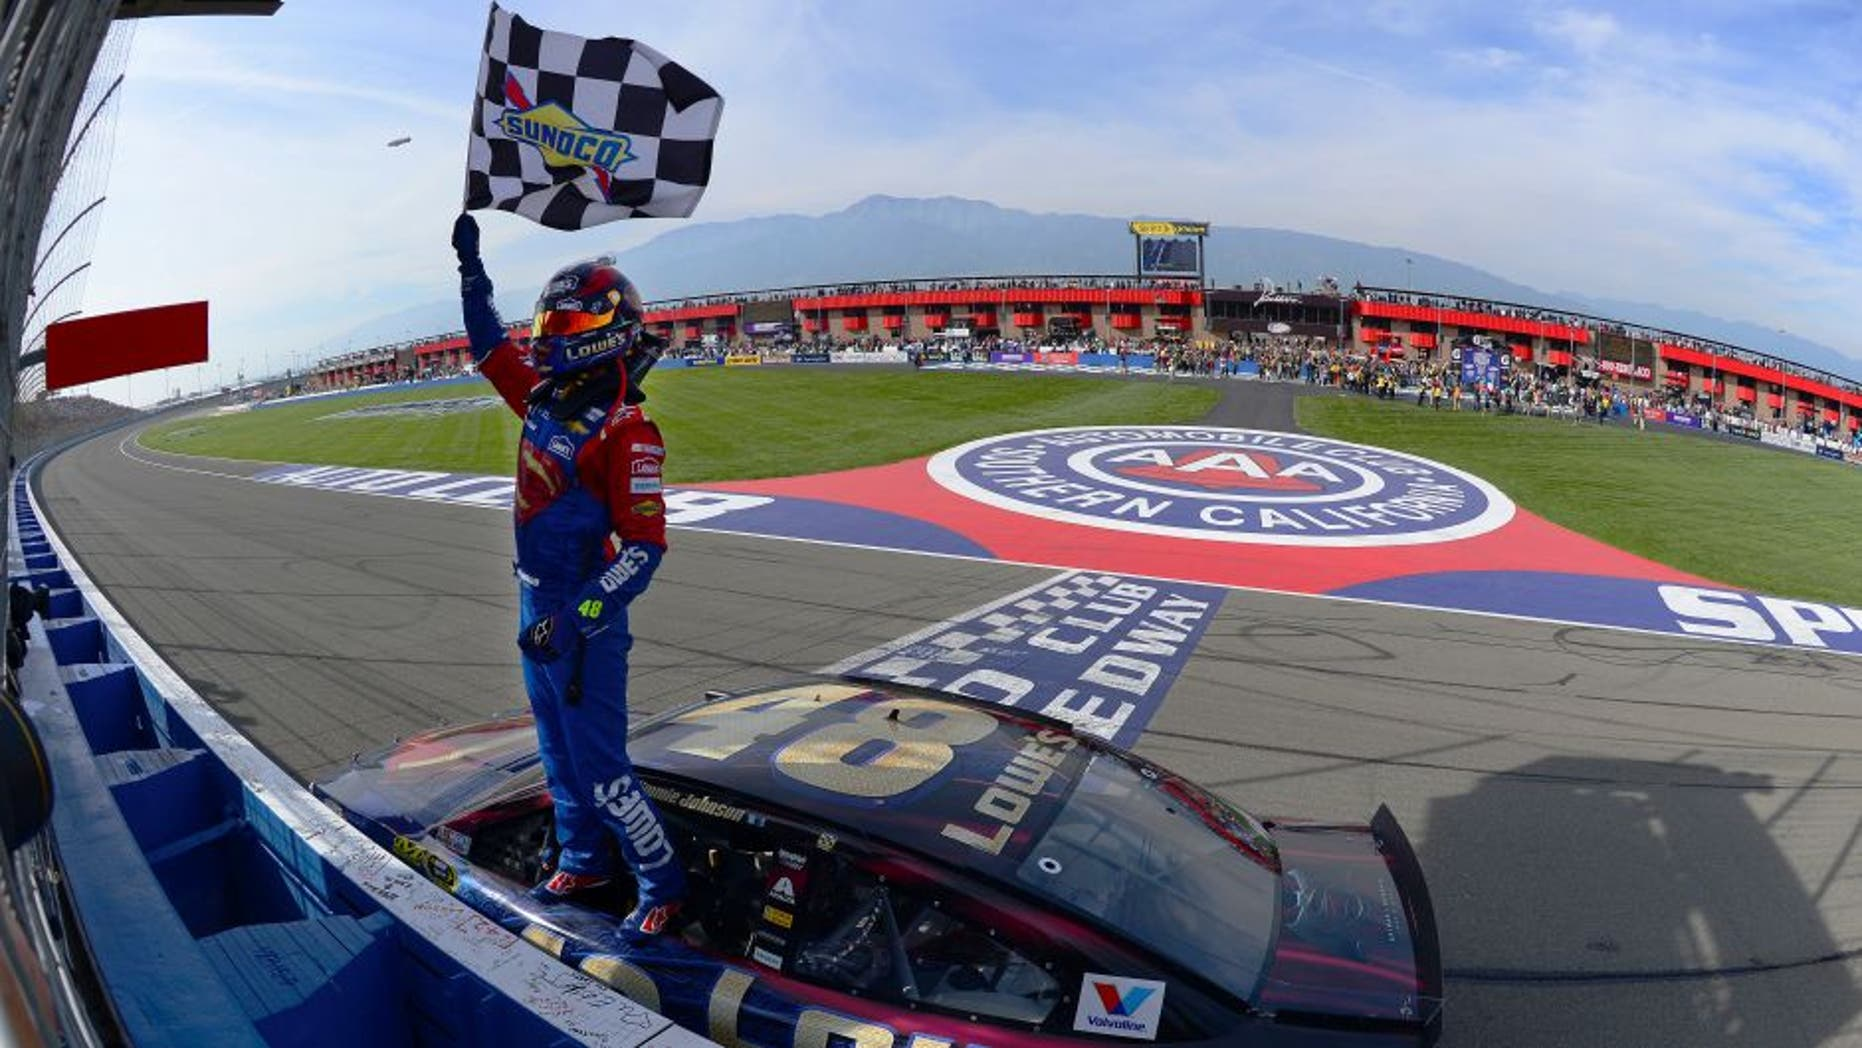 FONTANA, CA - MARCH 20: Jimmie Johnson, driver of the #48 Lowe's / Superman Chevrolet, celebrates after taking the checkered flag during the NASCAR Sprint Cup Series Auto Club 400 at Auto Club Speedway on March 20, 2016 in Fontana, California. (Photo by Robert Laberge/Getty Images)